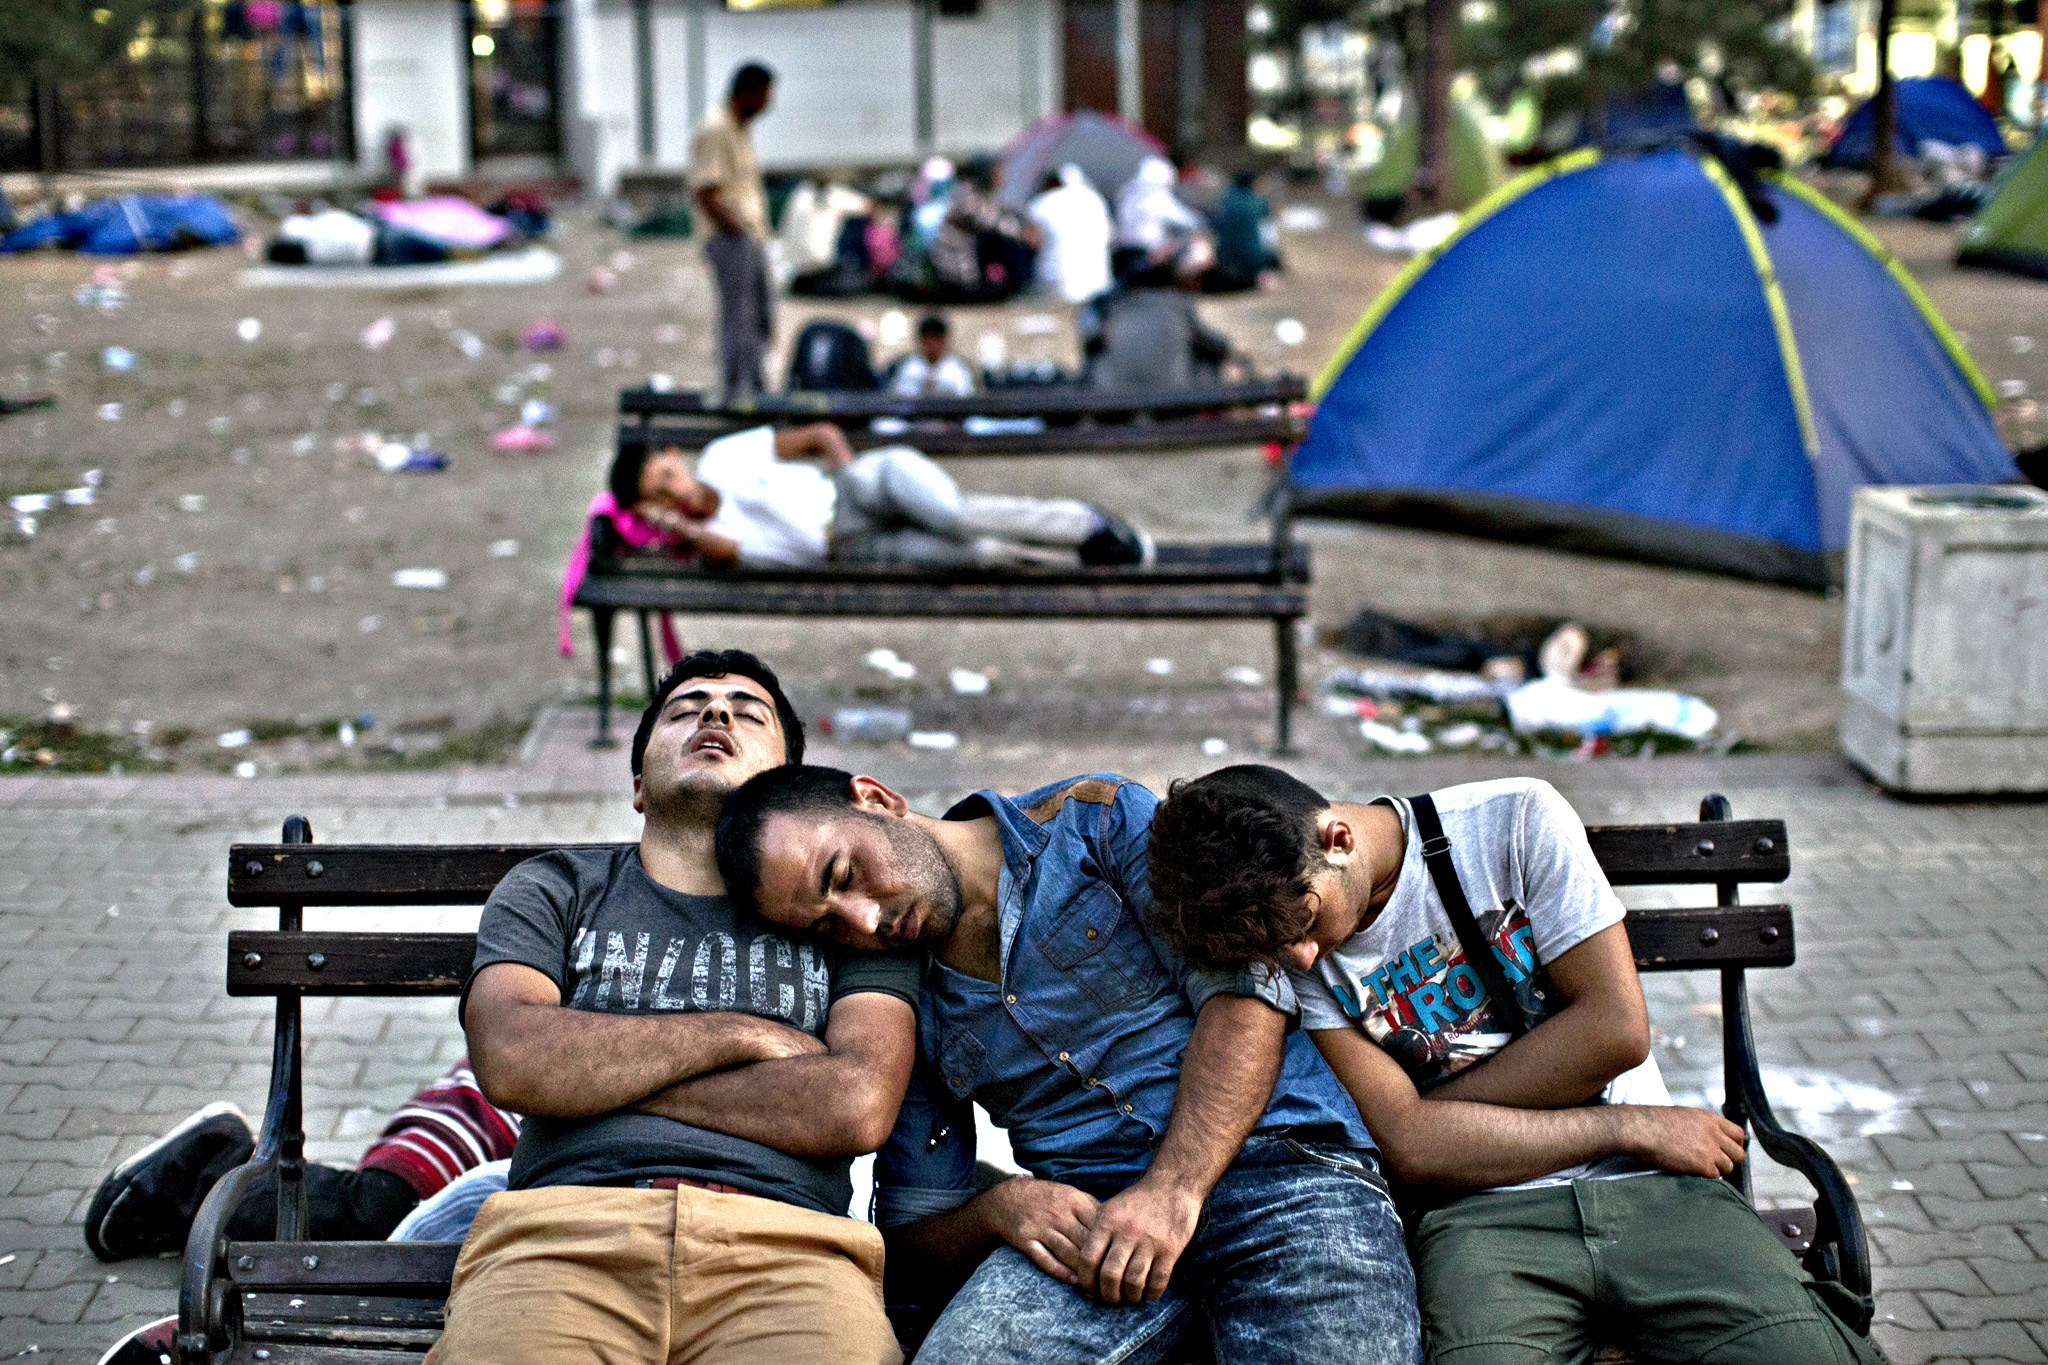 Migrants sleep on a bench at a park in Belgrade, Serbia, Friday, Aug. 28, 2015. Over 10,000 migrants, including many women with babies and small children, have crossed into Serbia over the past few days and headed toward Hungary and the EU Schengen Area, a zone with no internal border checks between member countries